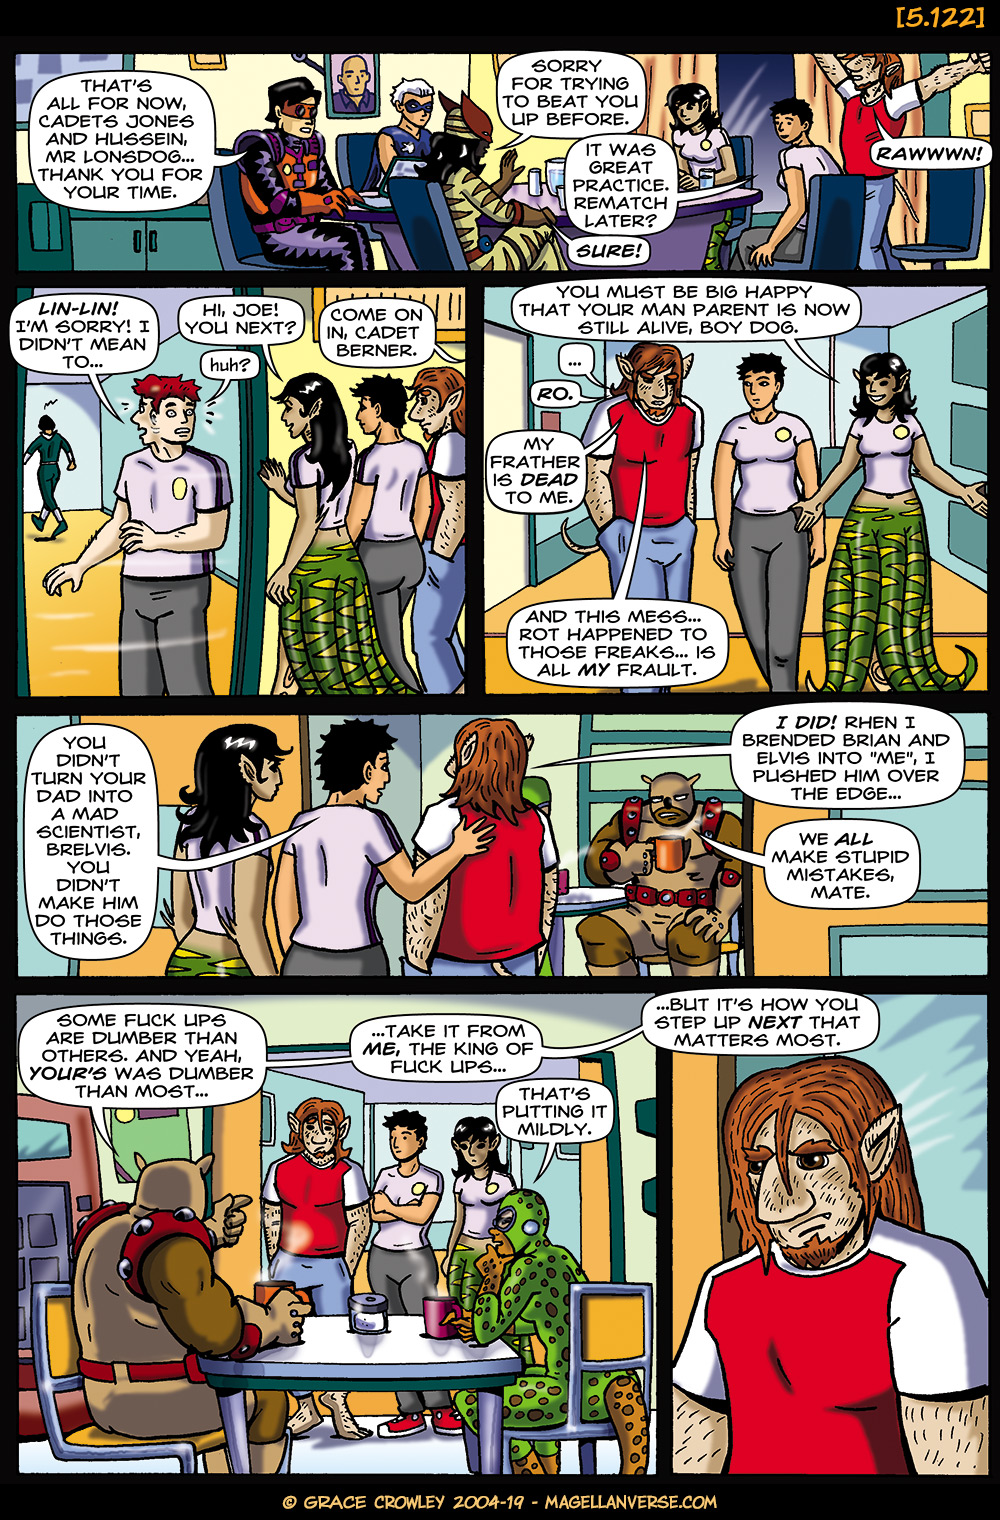 Page 5.122